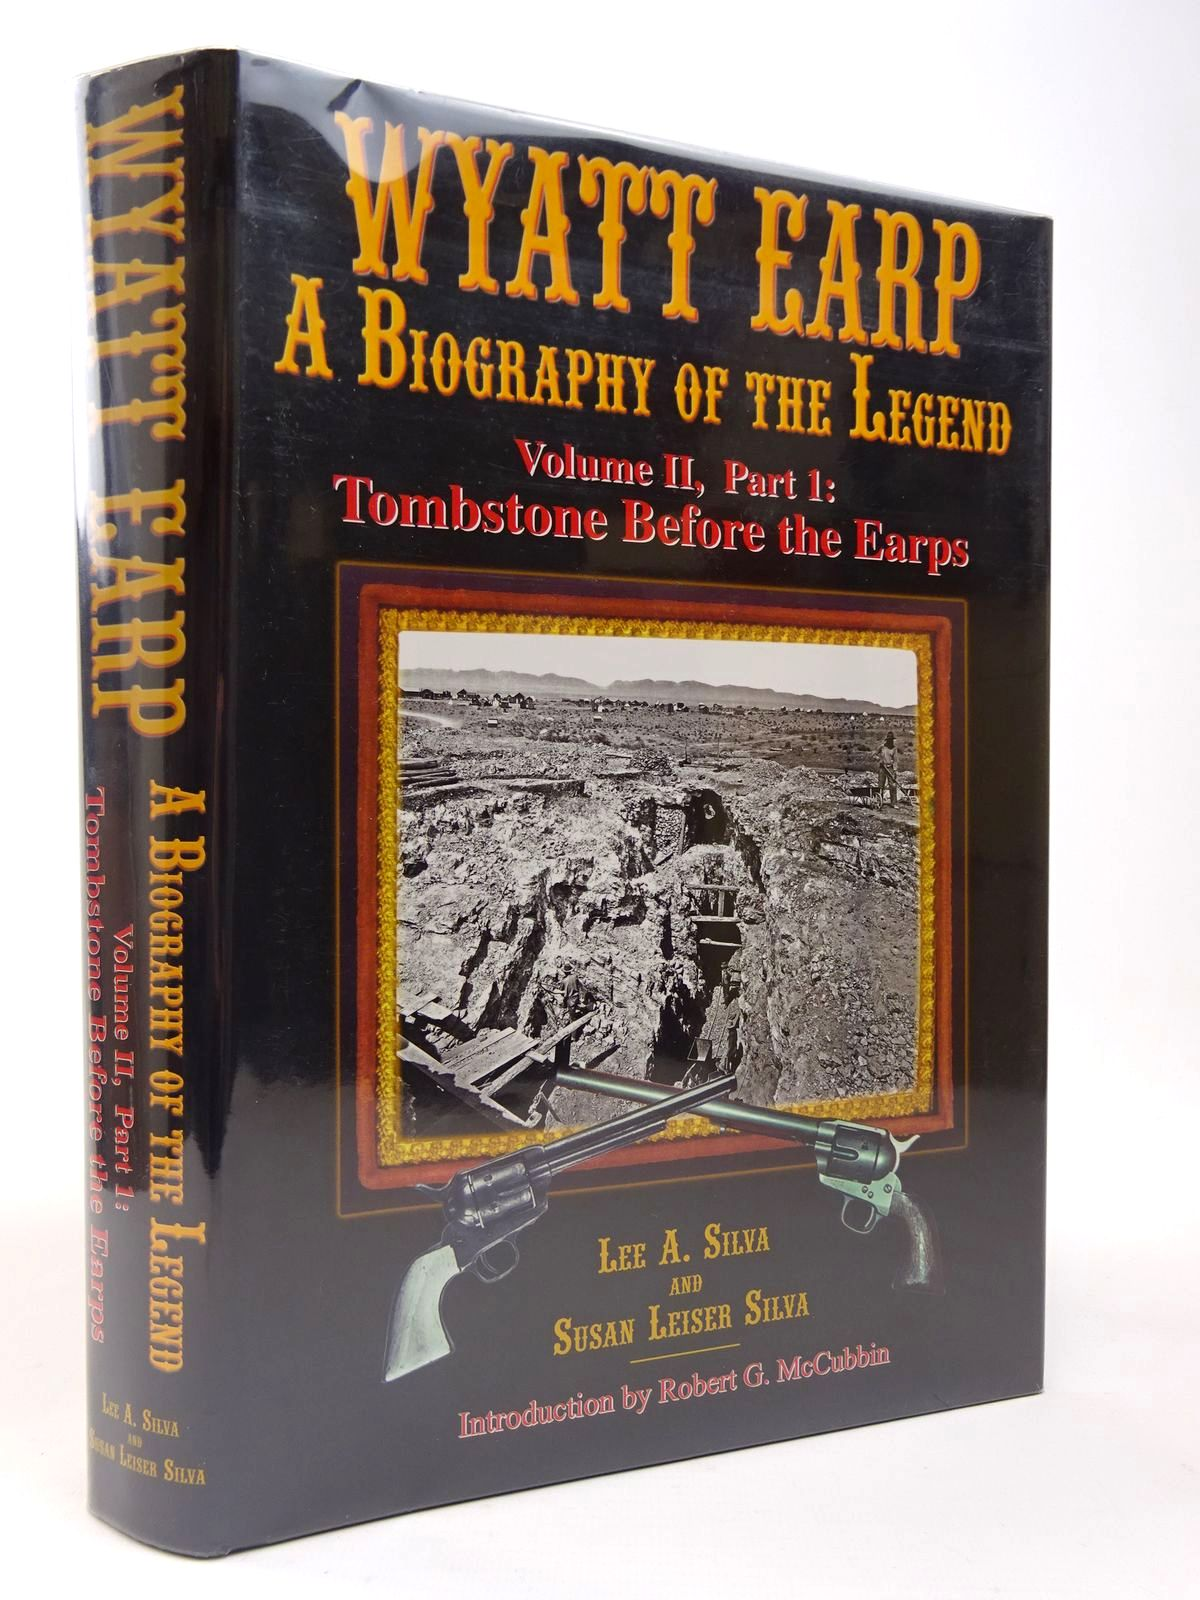 Photo of WYATT EARP A BIOGRAPHY OF THE LEGEND VOLUME II, PART 1: TOMBSTONE BEFORE THE EARPS written by Silva, Lee A. Silva, Susan Leiser et al, published by Graphic Publishers (STOCK CODE: 2129560)  for sale by Stella & Rose's Books